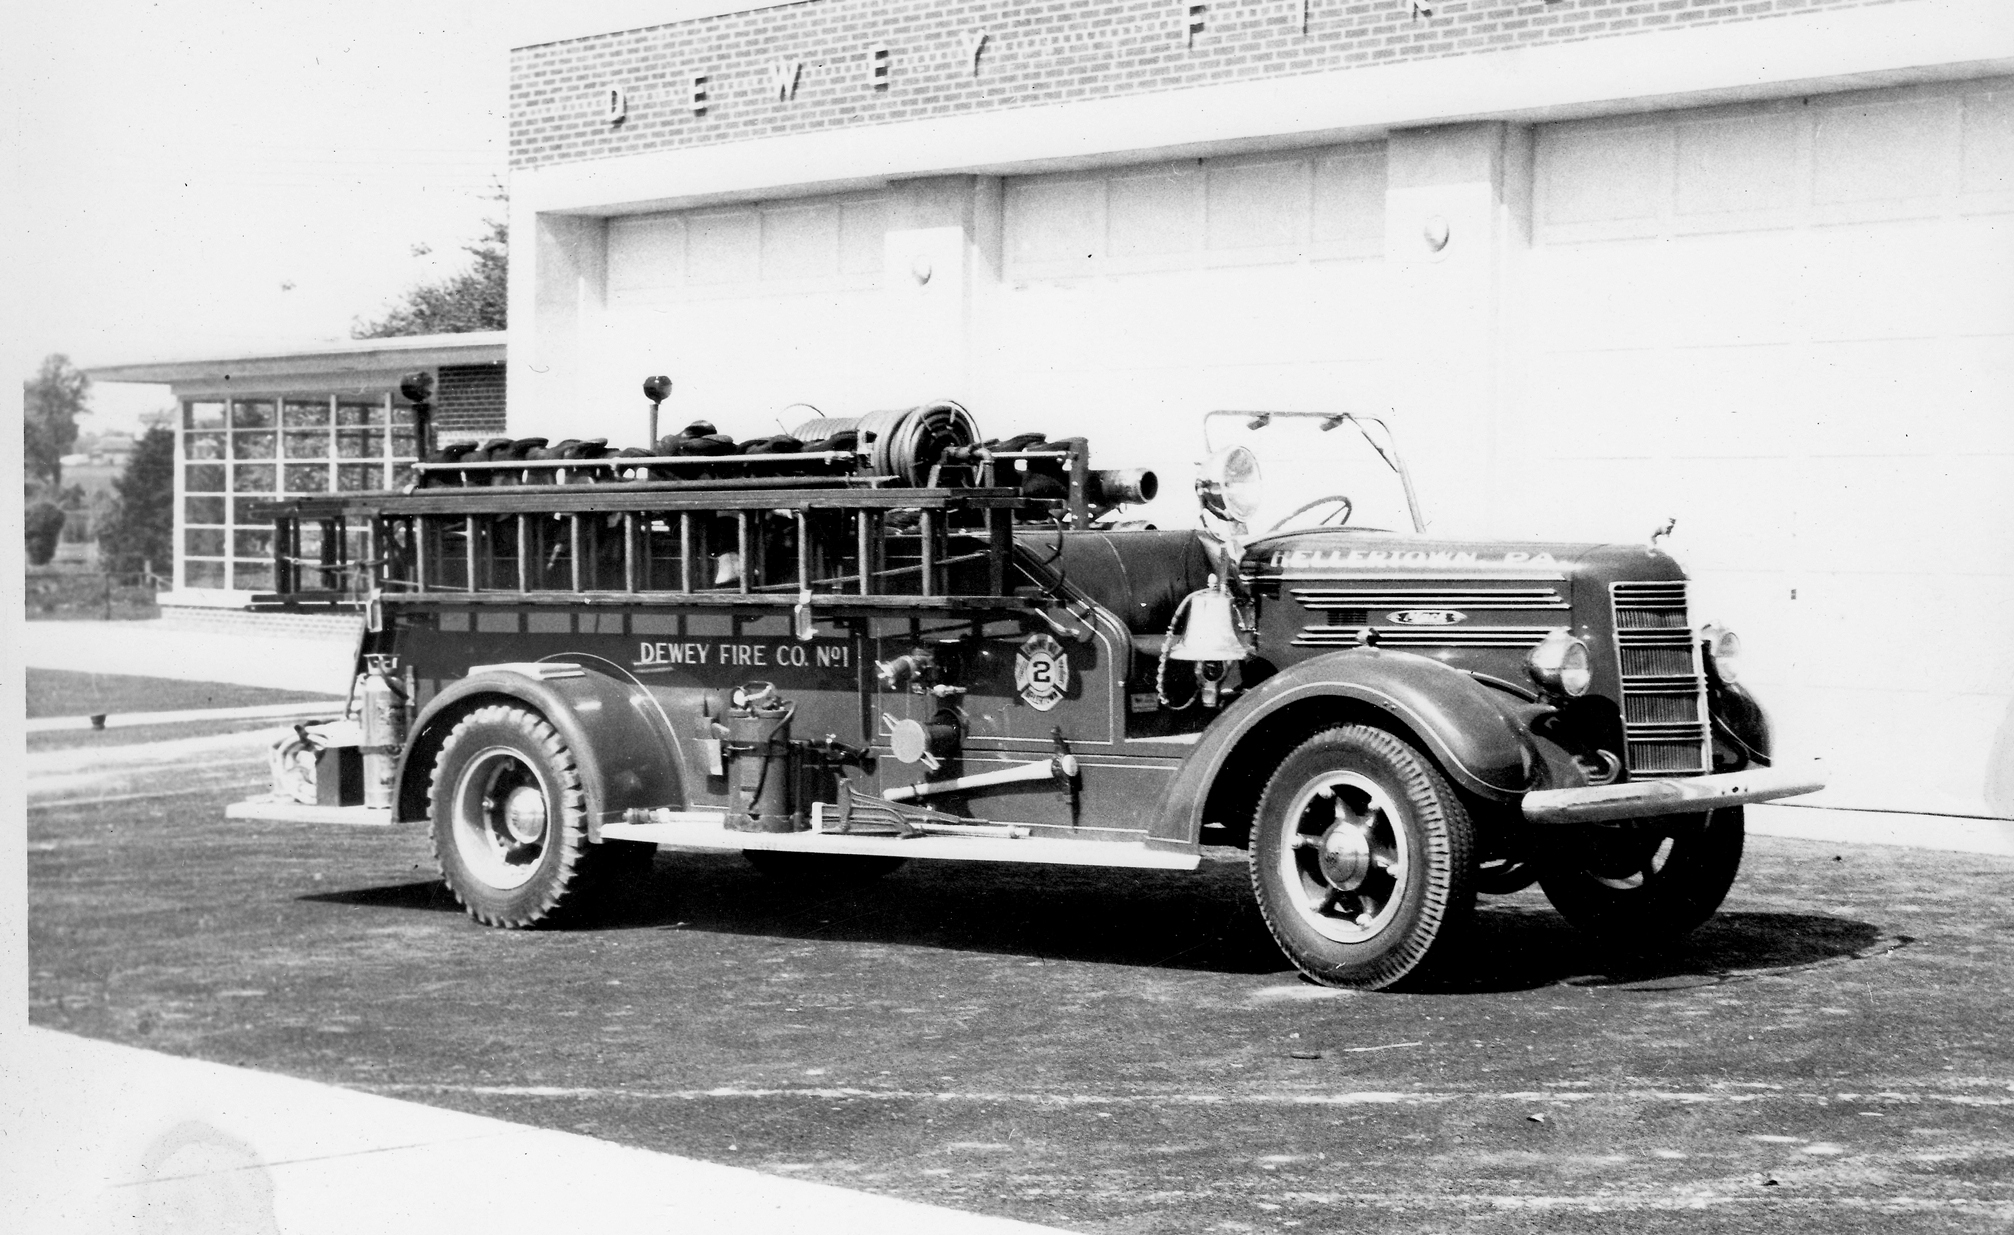 Mack Fire Truck Computer Wallpapers Desktop Backgrounds 2014x1235 2014x1235